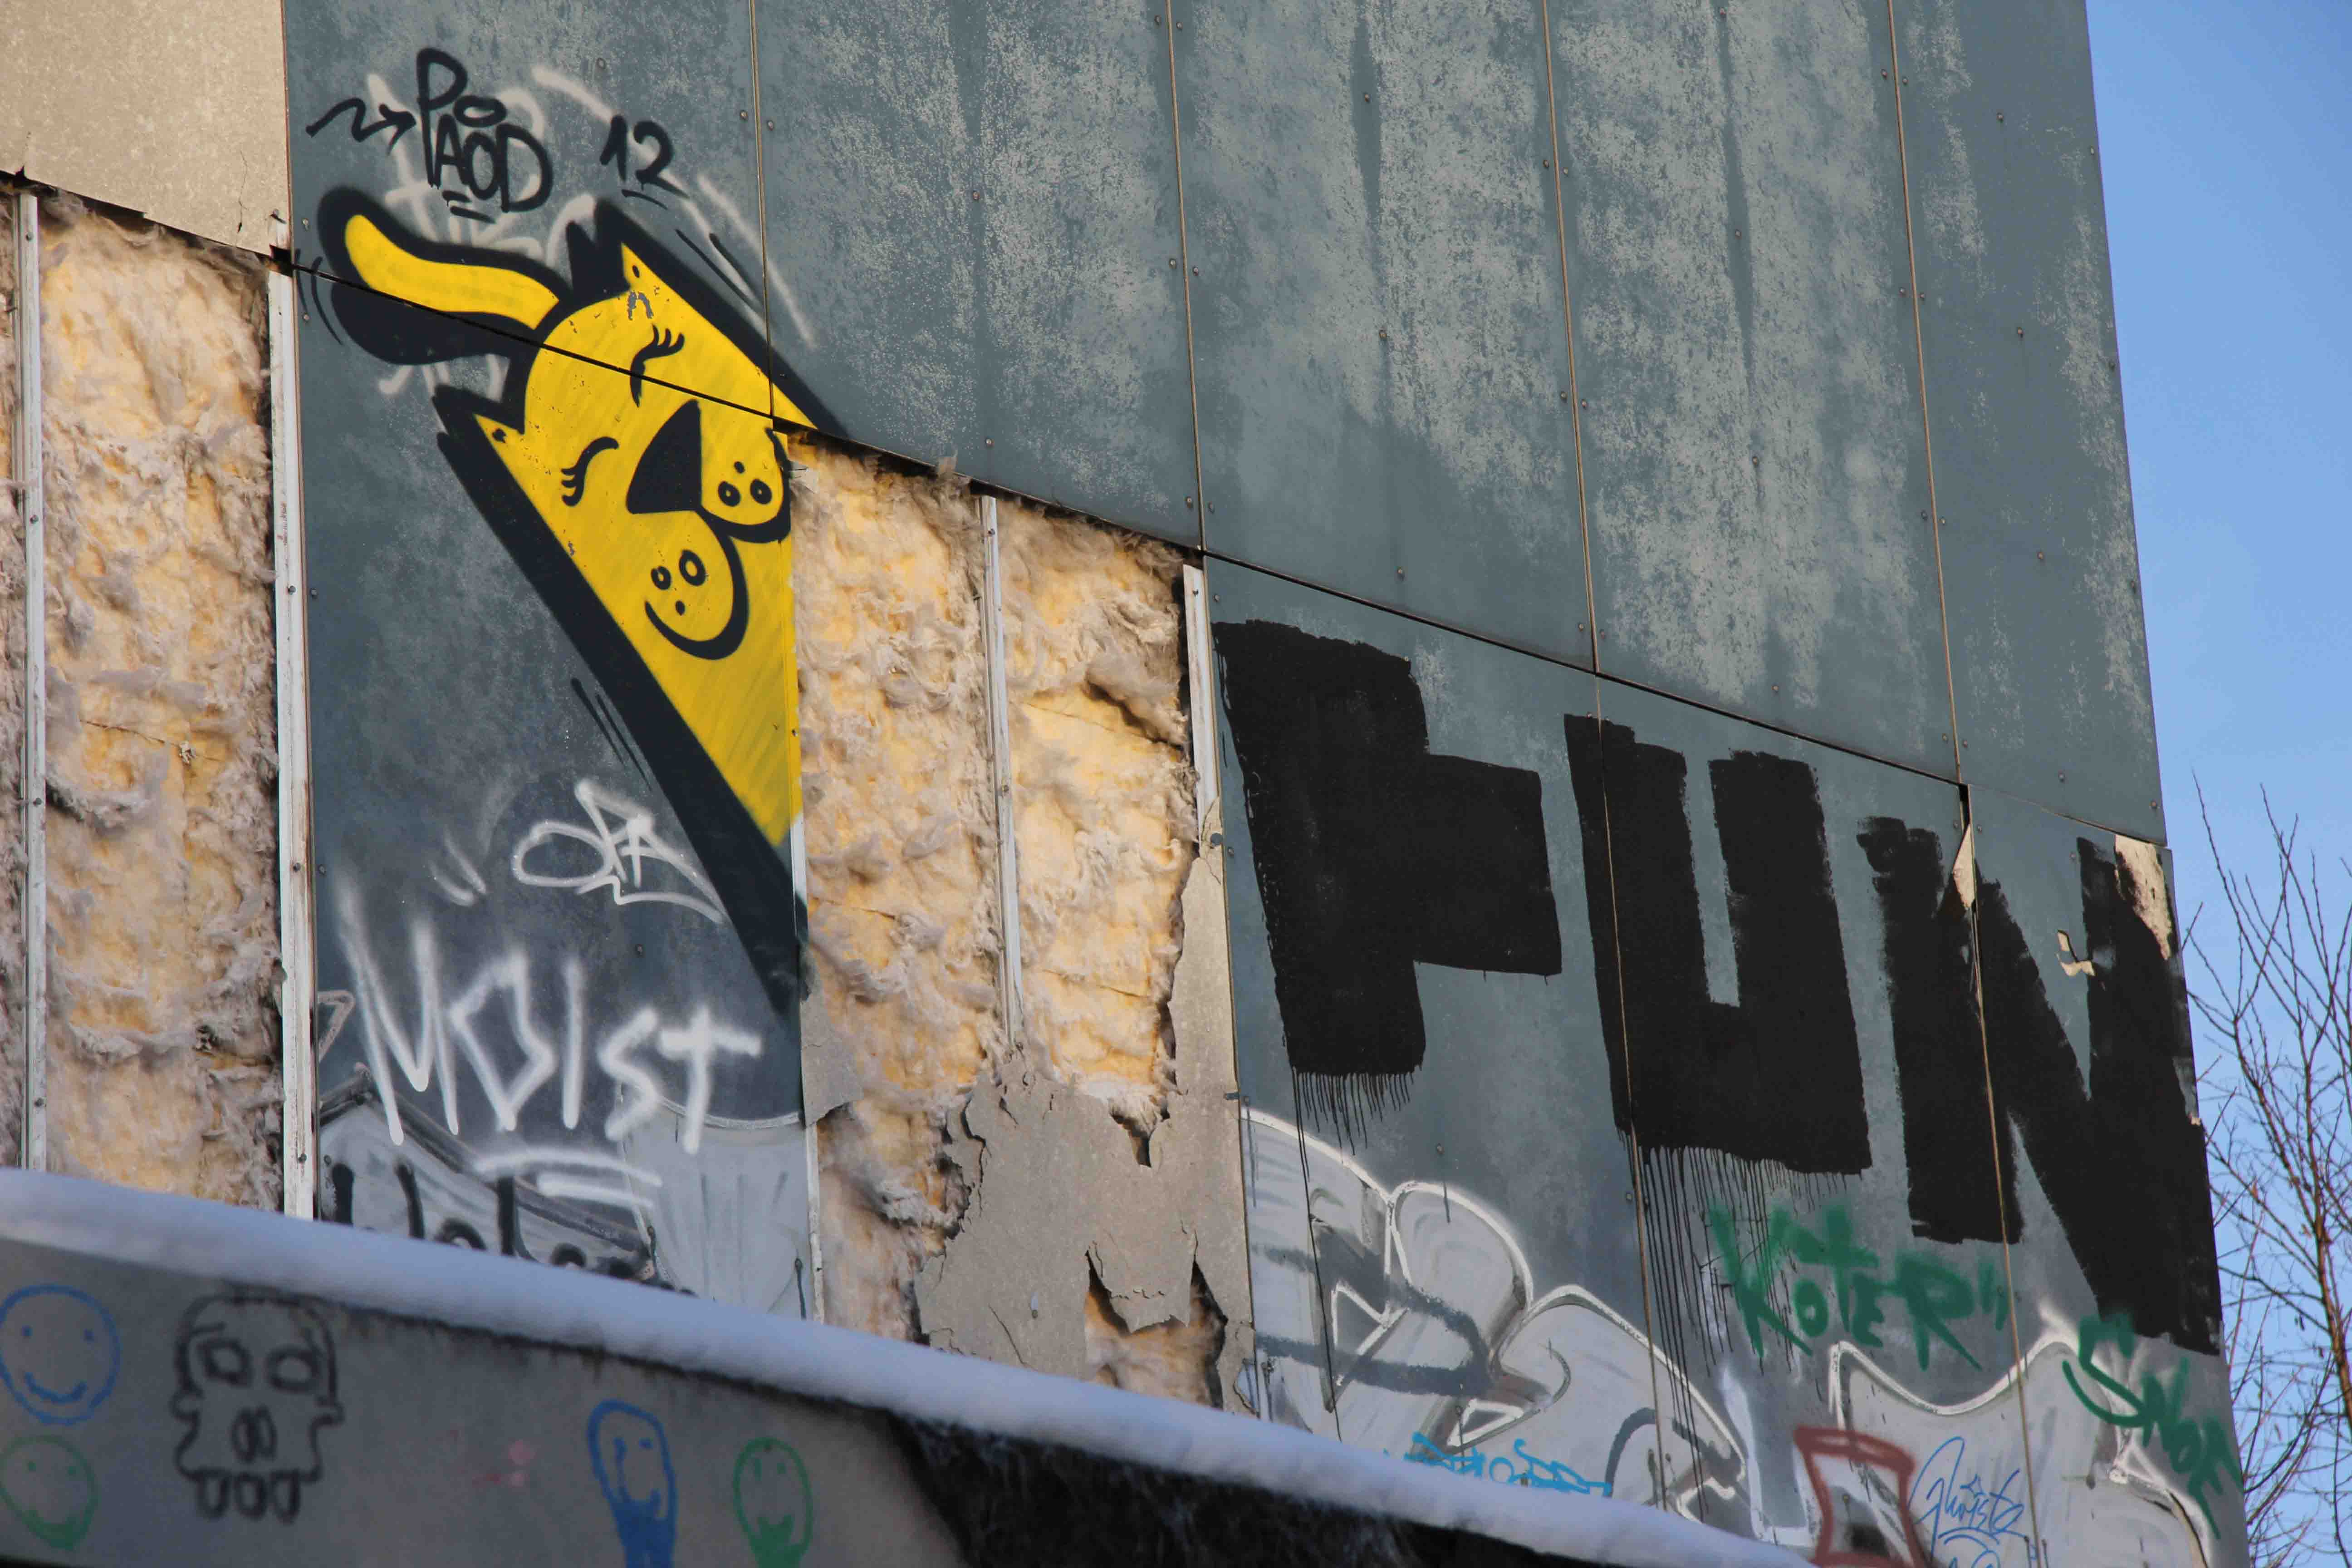 Cat - Street Art by PAOD at the former NSA Listening Station at Teufelsberg Berlin